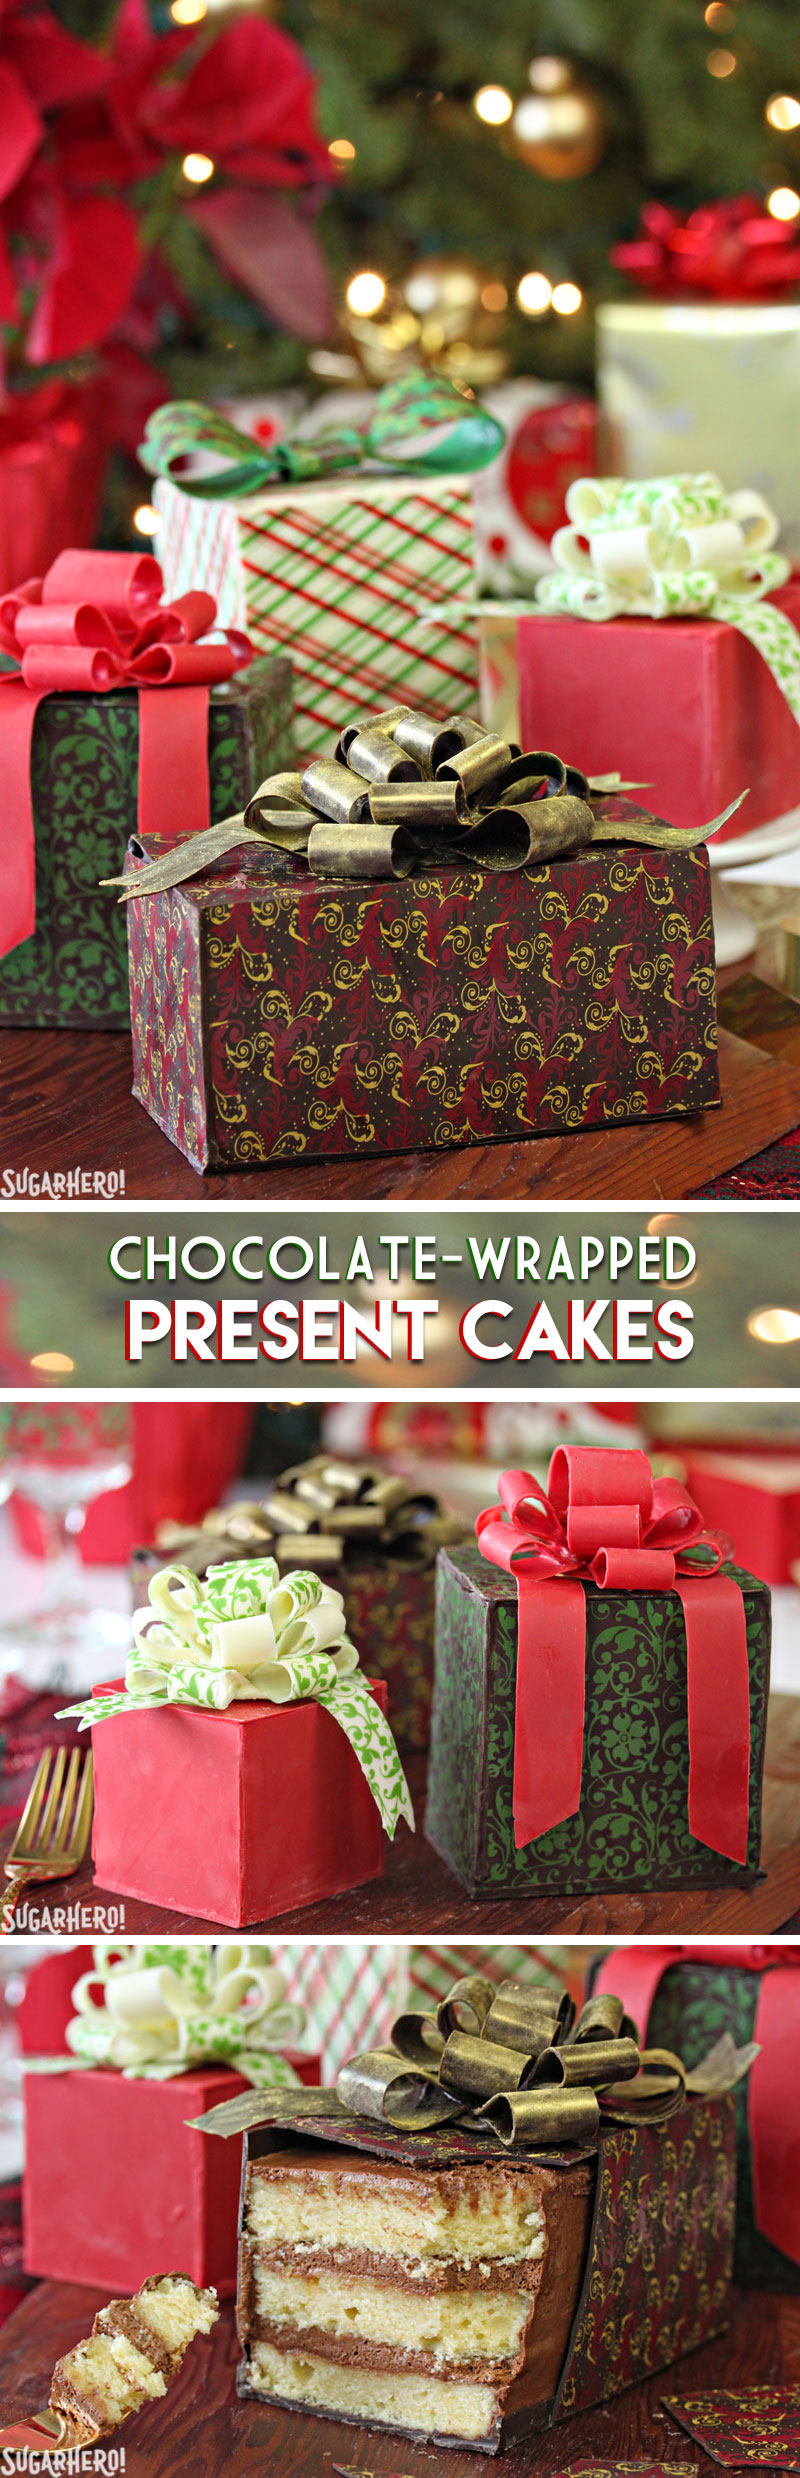 Chocolate-Wrapped Present Cakes - layered mini cakes entirely covered with edible chocolate wrapping paper and chocolate bows! | From SugarHero.com